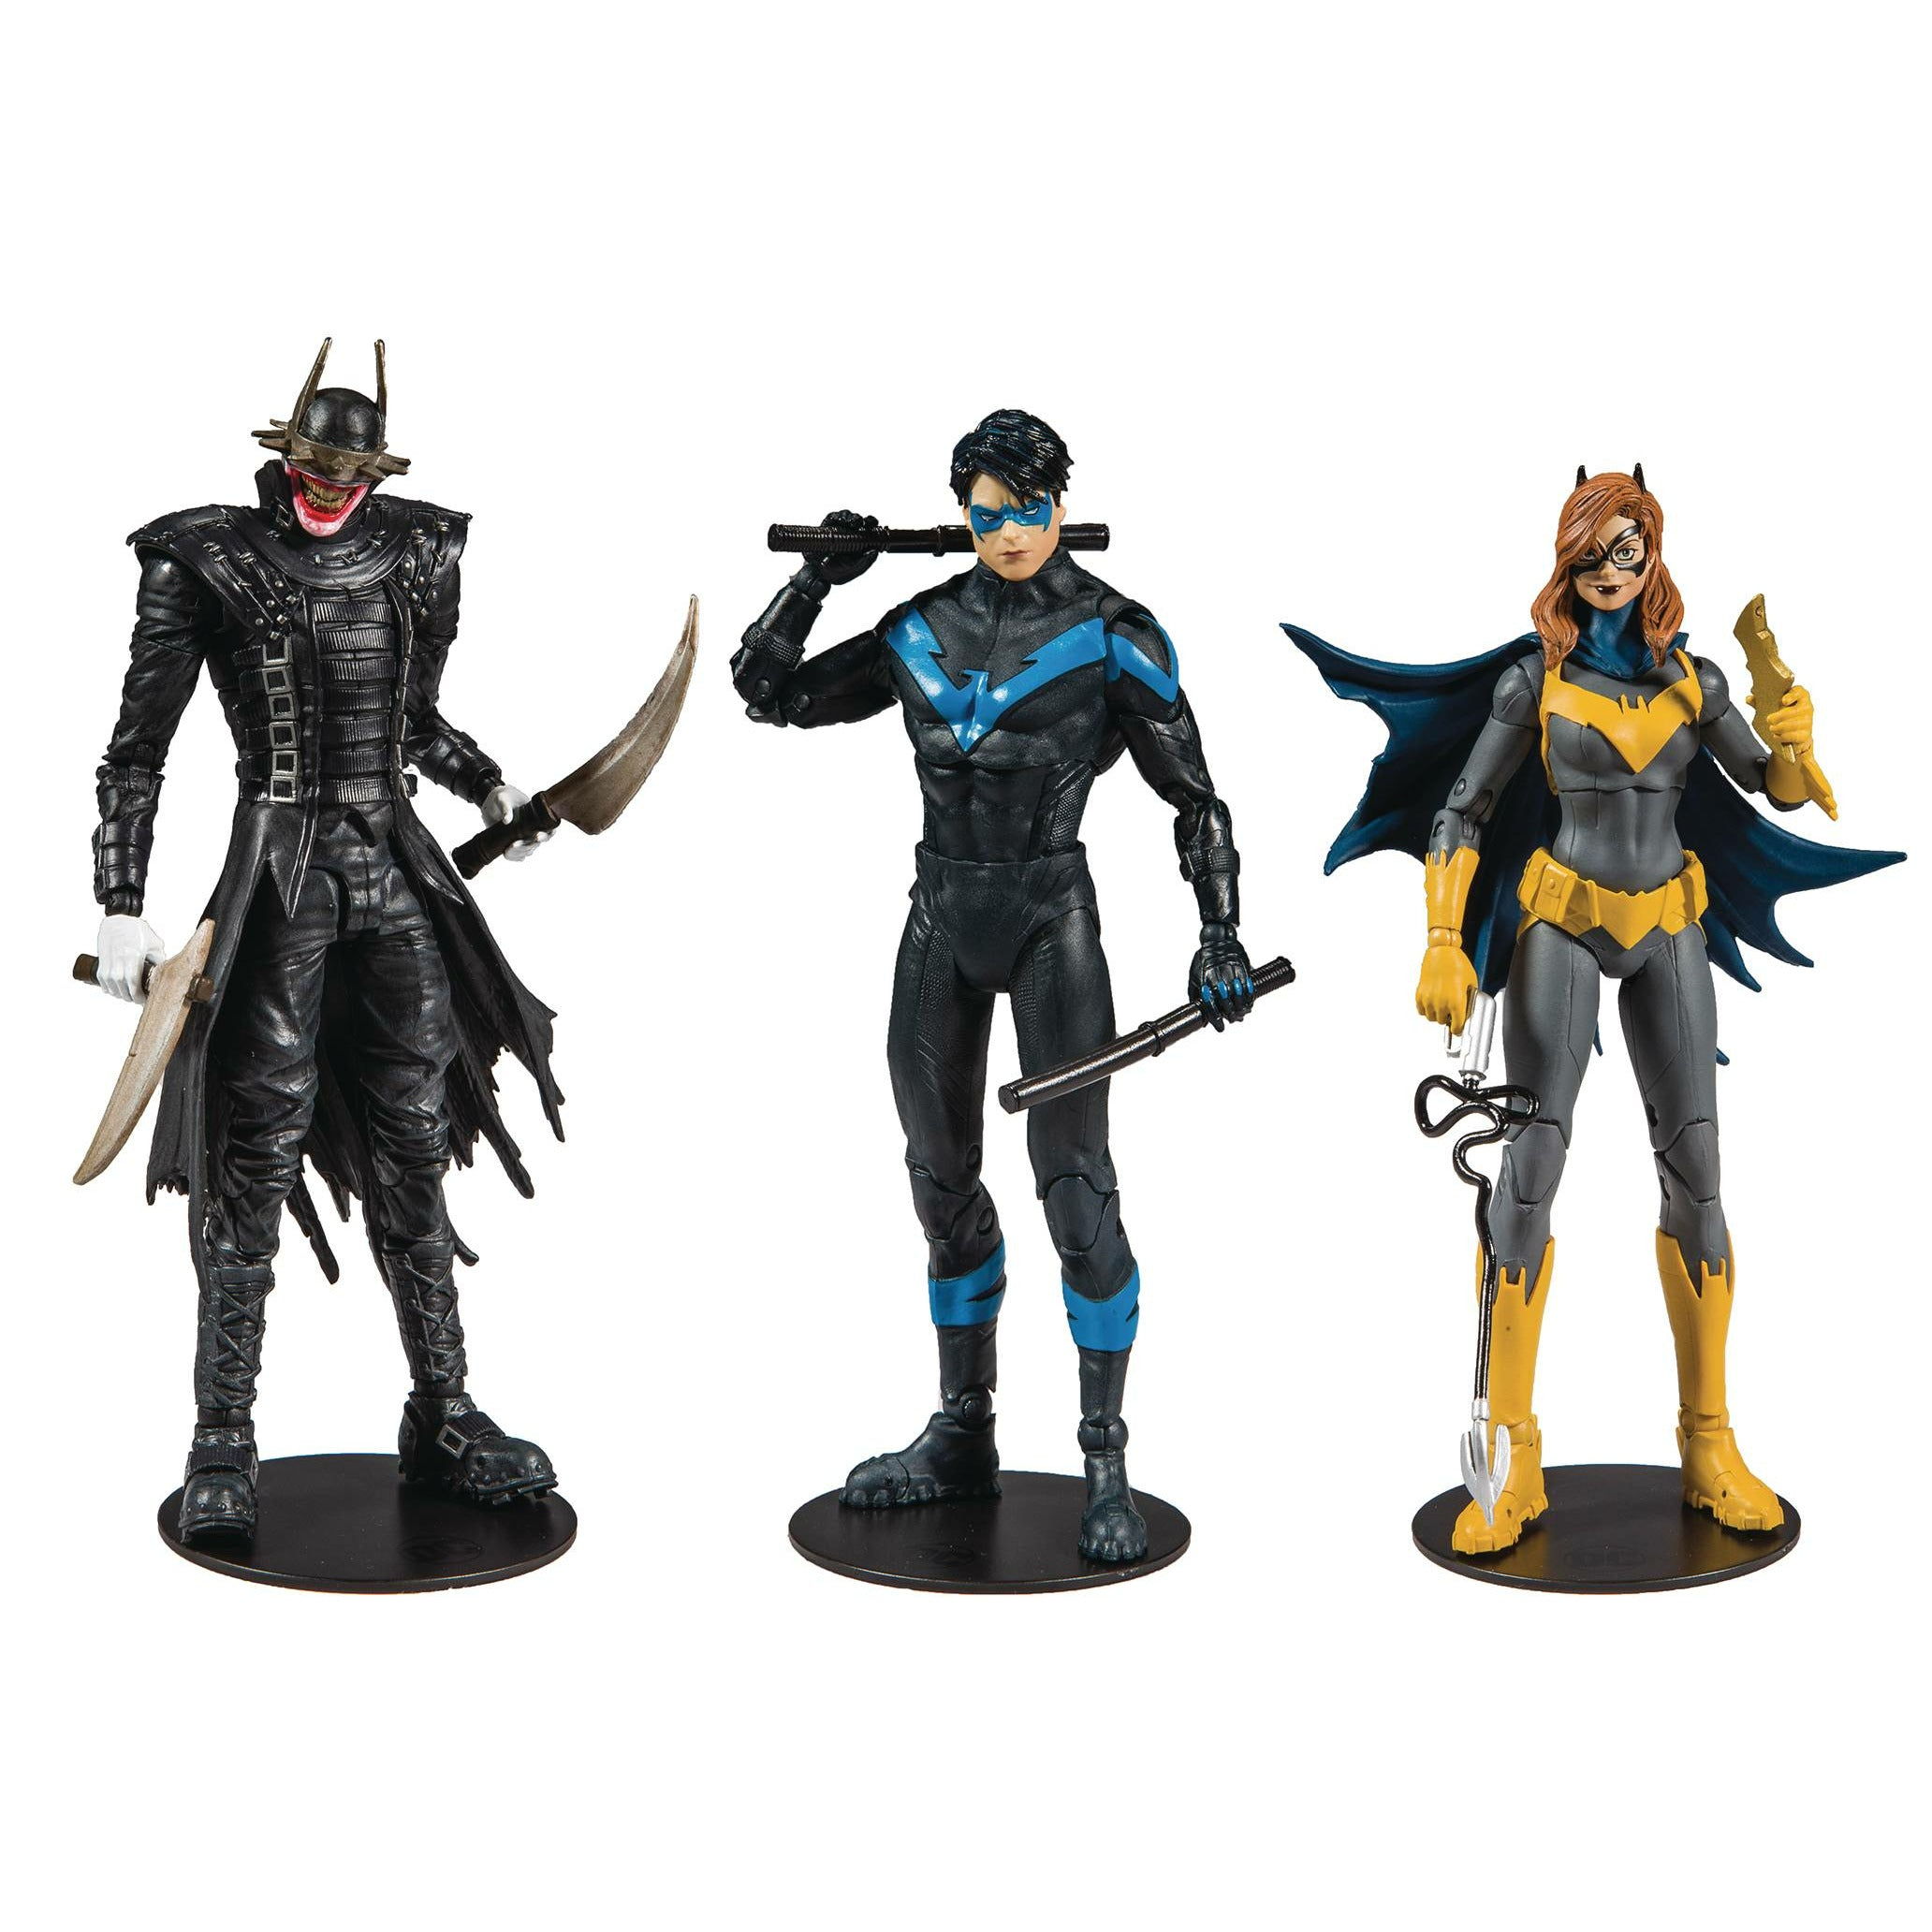 DC Collector 7in Scale Wv1 Action Figure Assortment